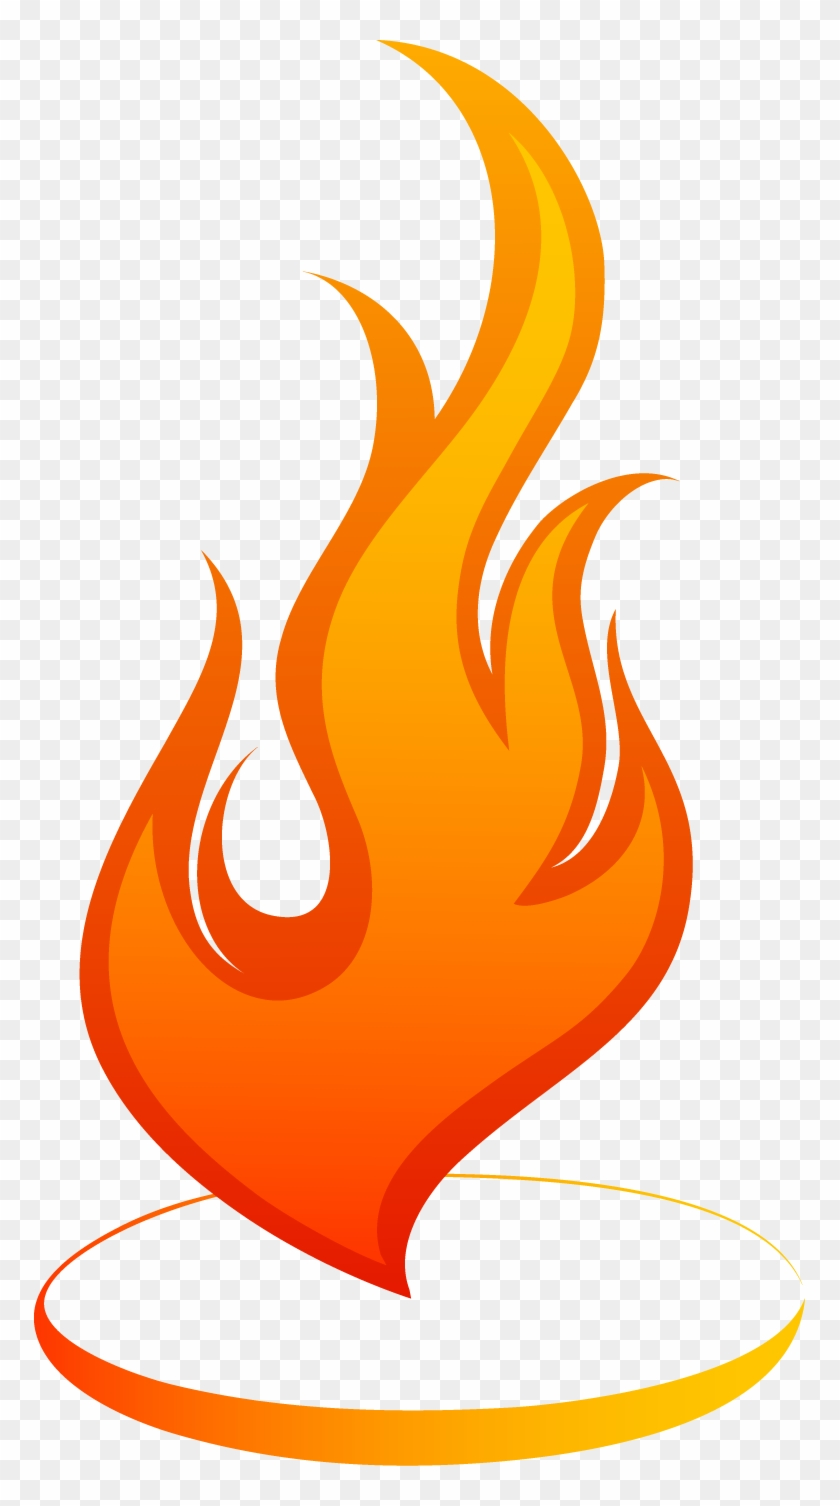 Flame, Fire 01 Png - Fire Flame Clip Art Transparent Png #5726164